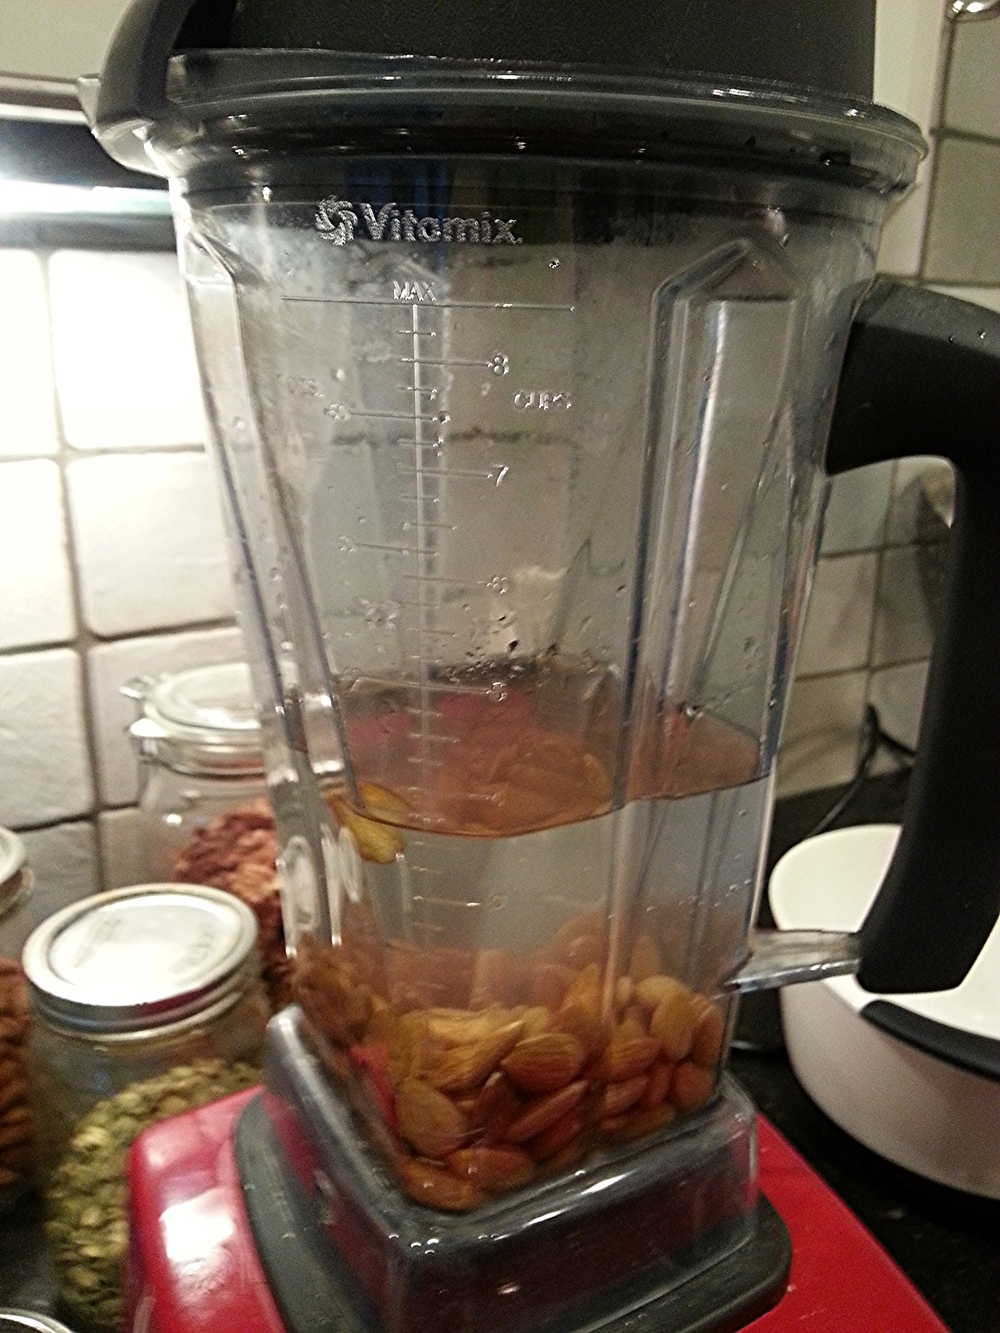 Once the soaked almonds have been rinsed, pop them in the blender with a fresh 3 cups of water. That's it. Not too difficult so far, is it?